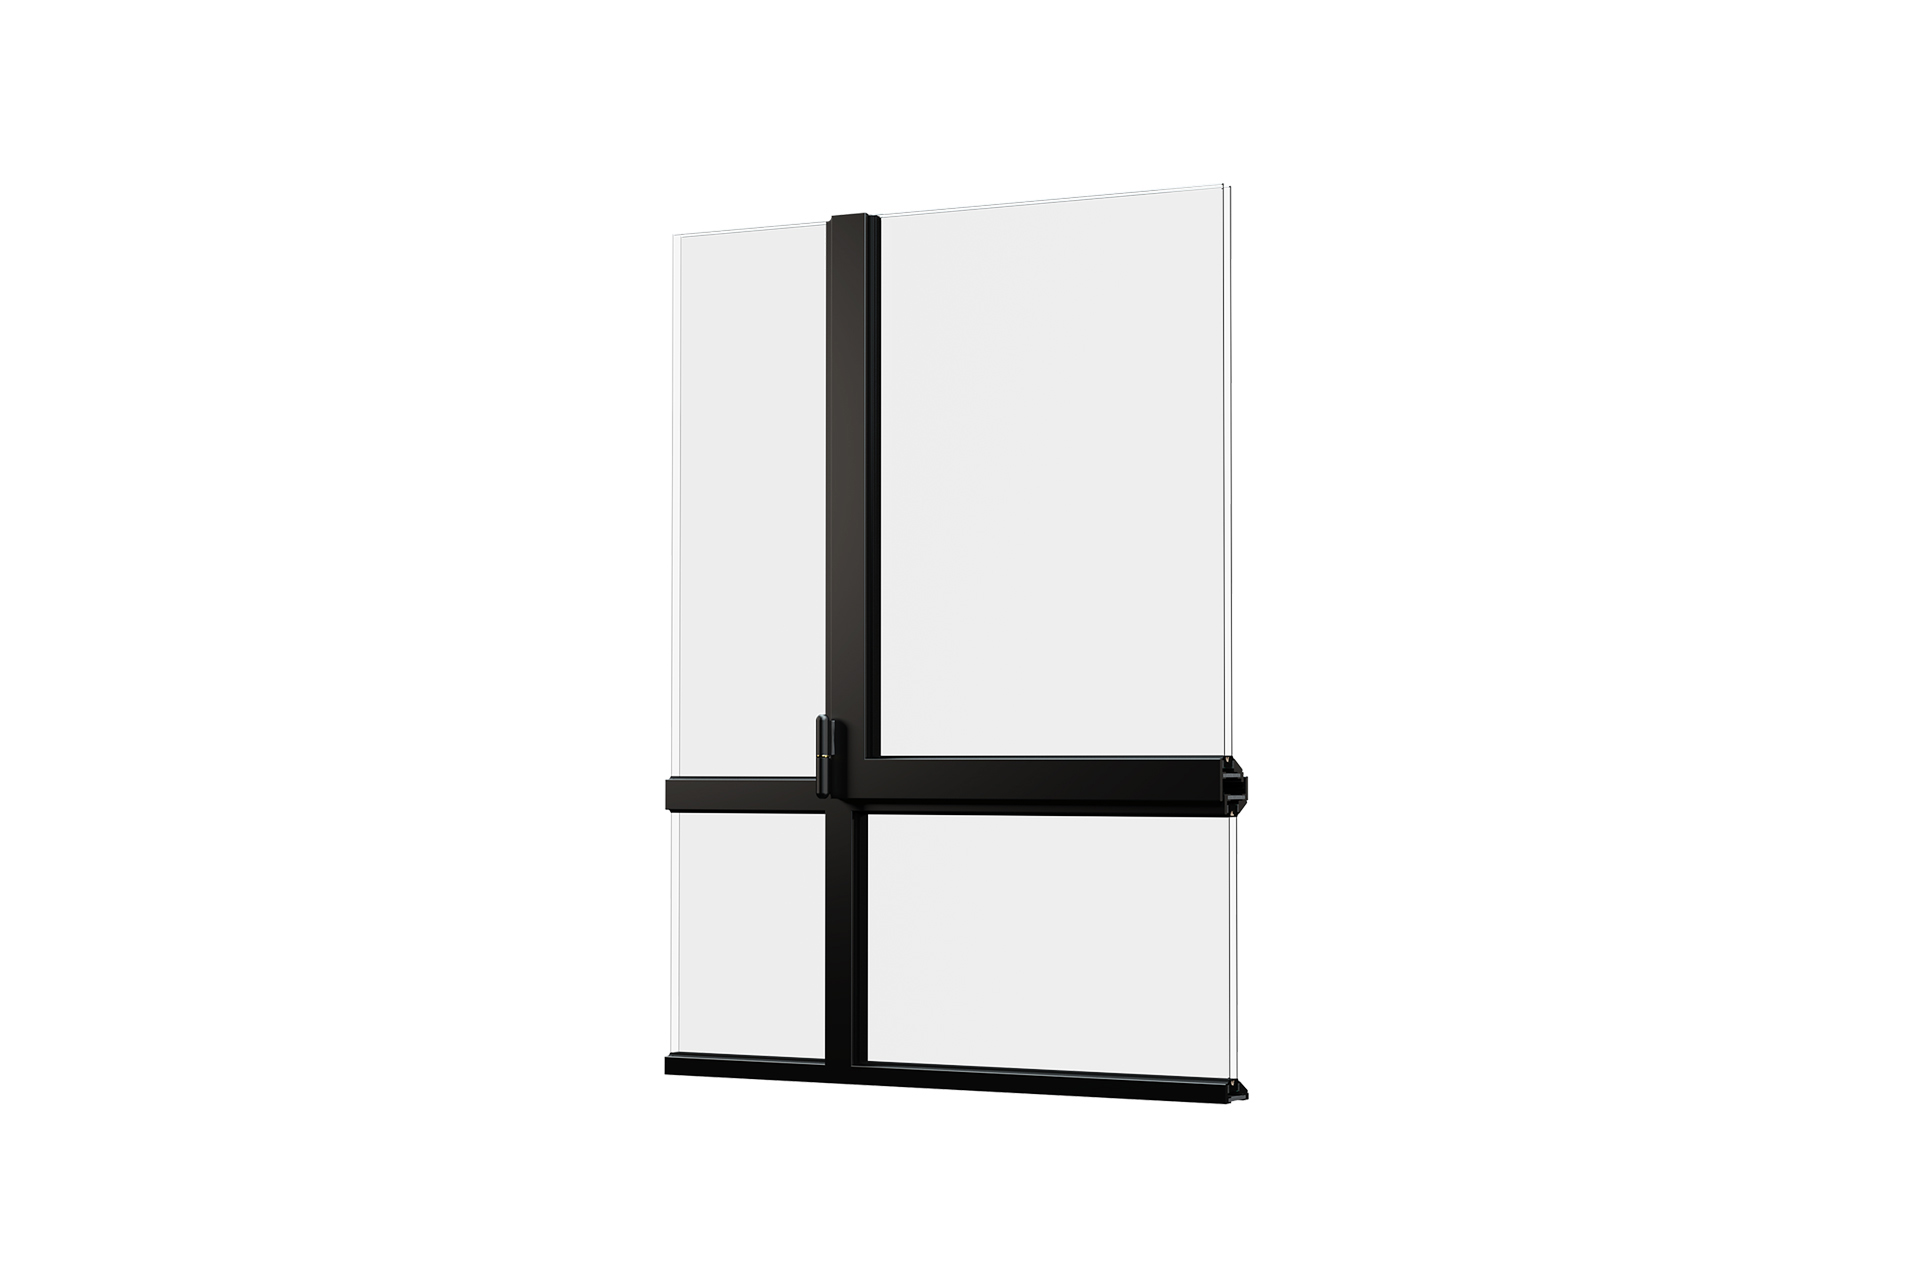 3D model of the CLASSIC-ISO profile system in a mondriaan shape, front view